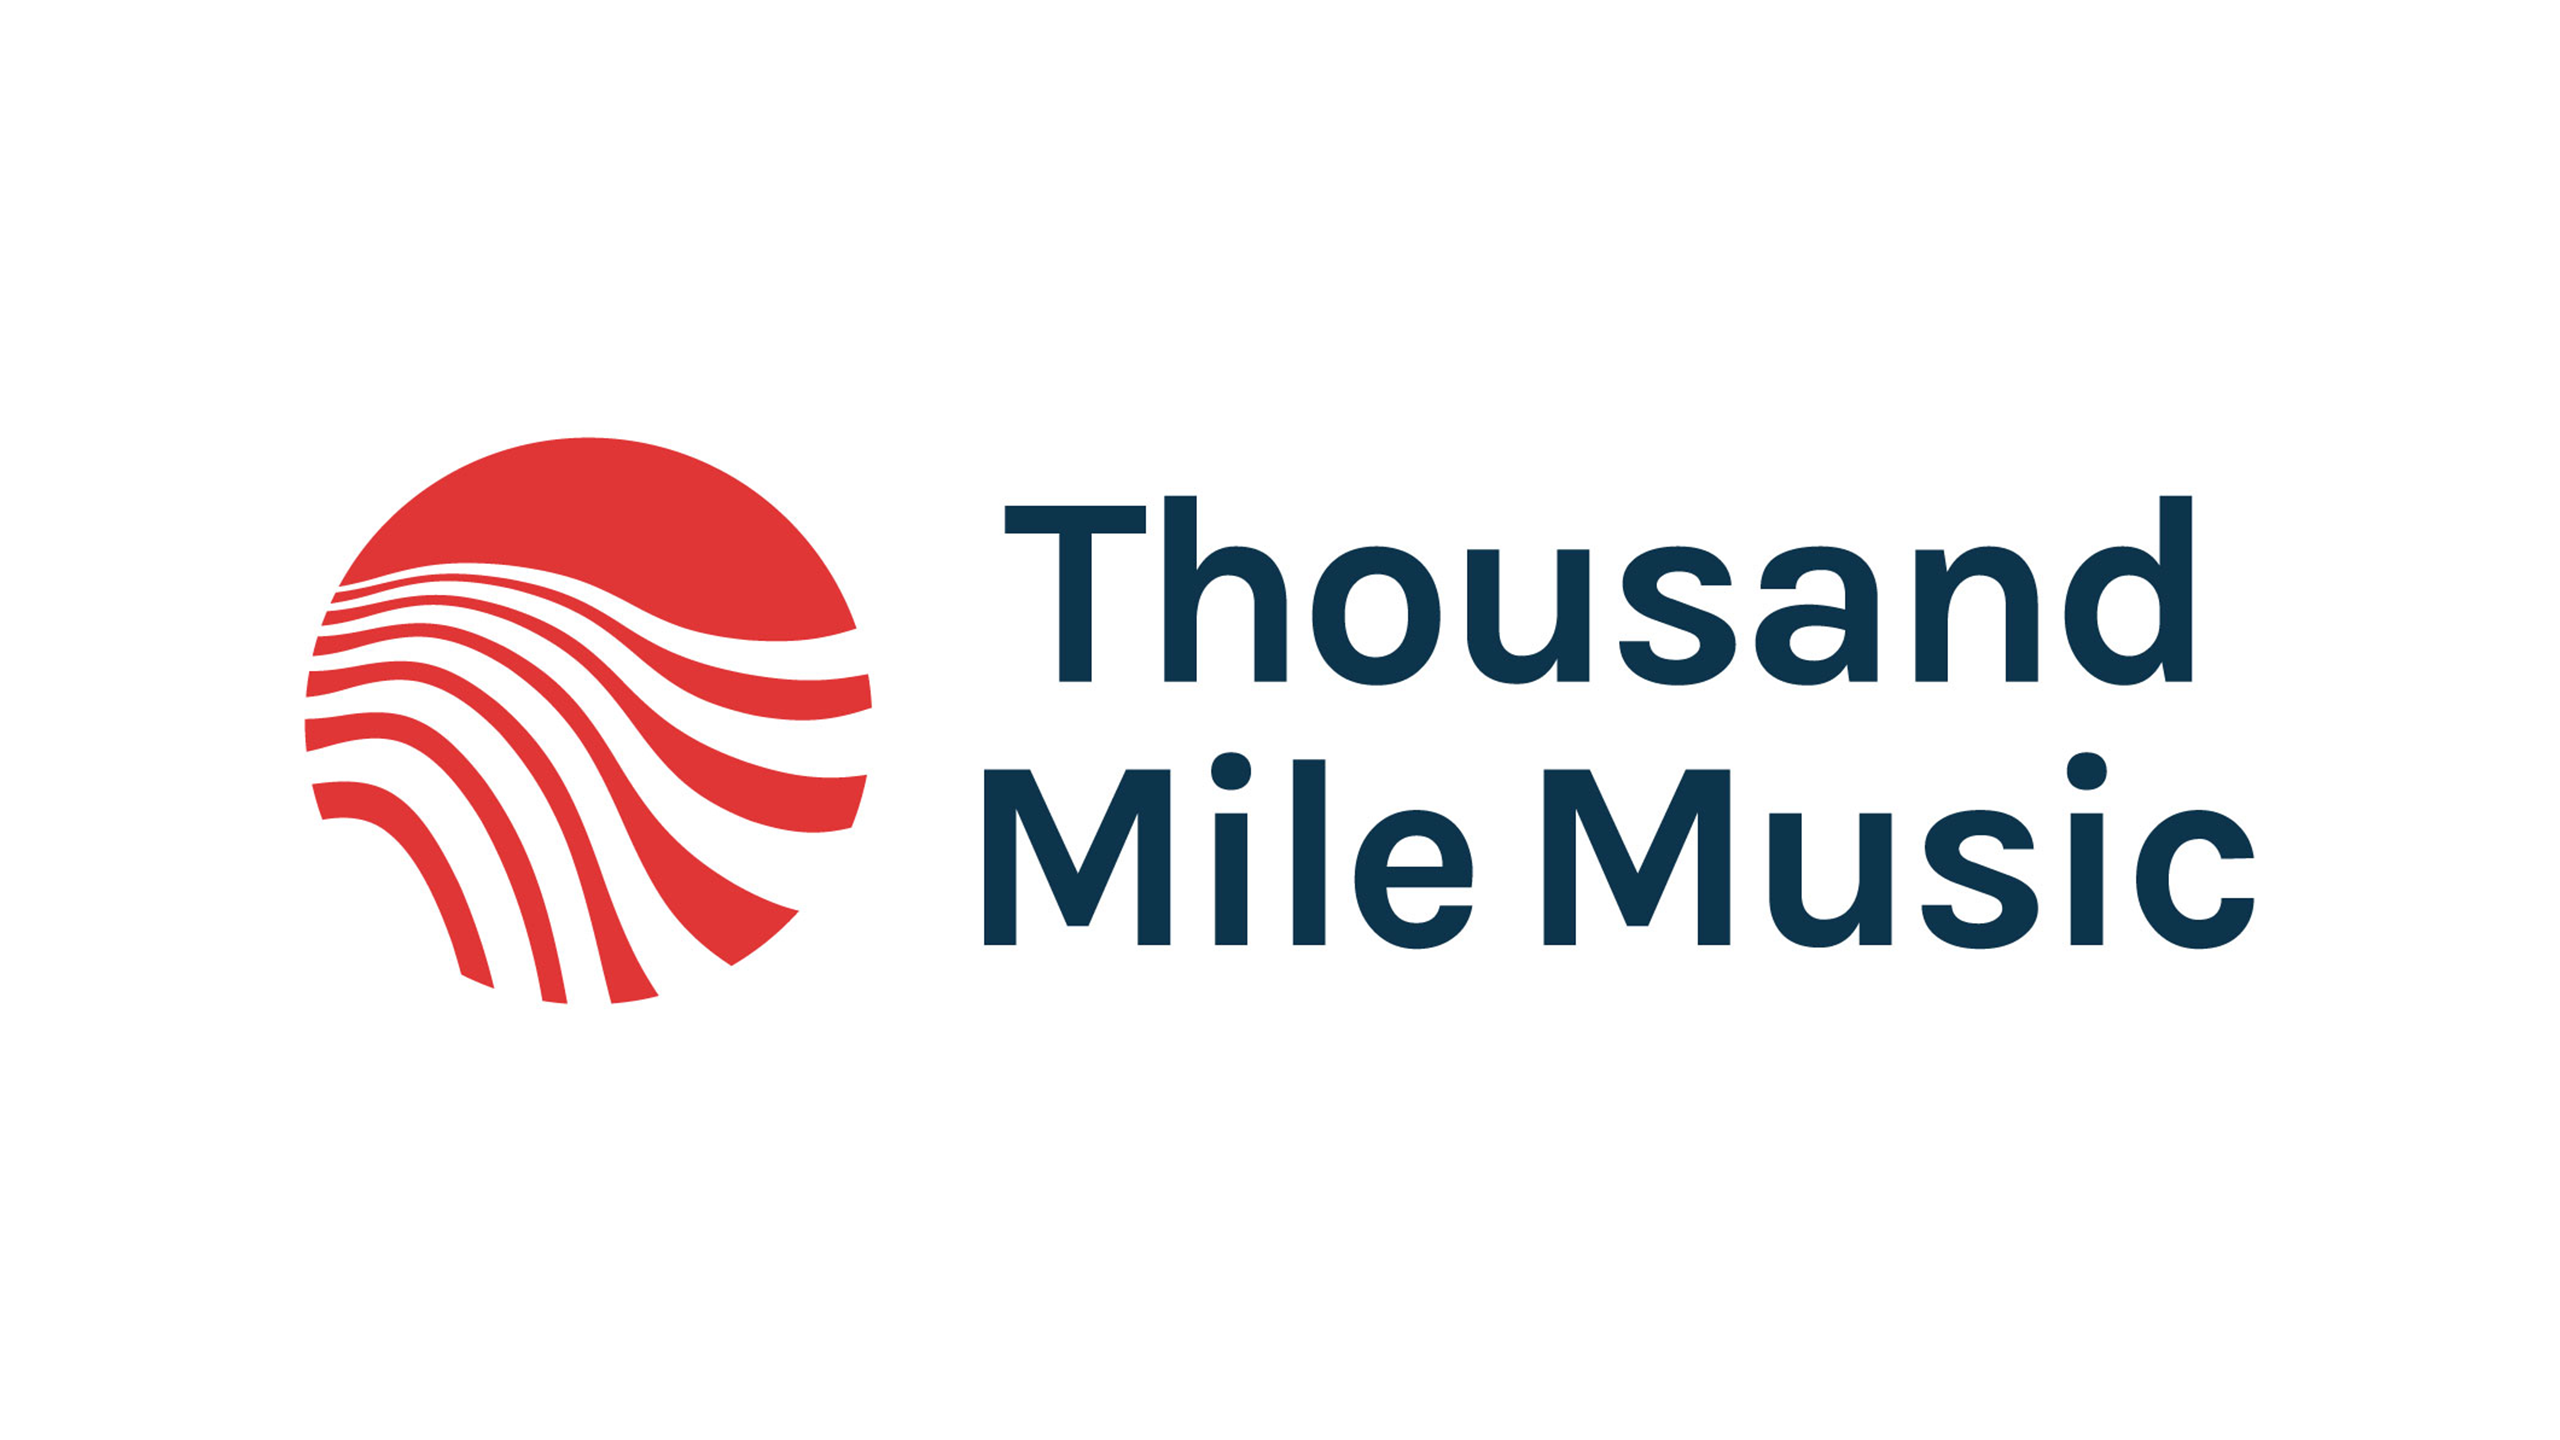 Thousand Mile Music logo